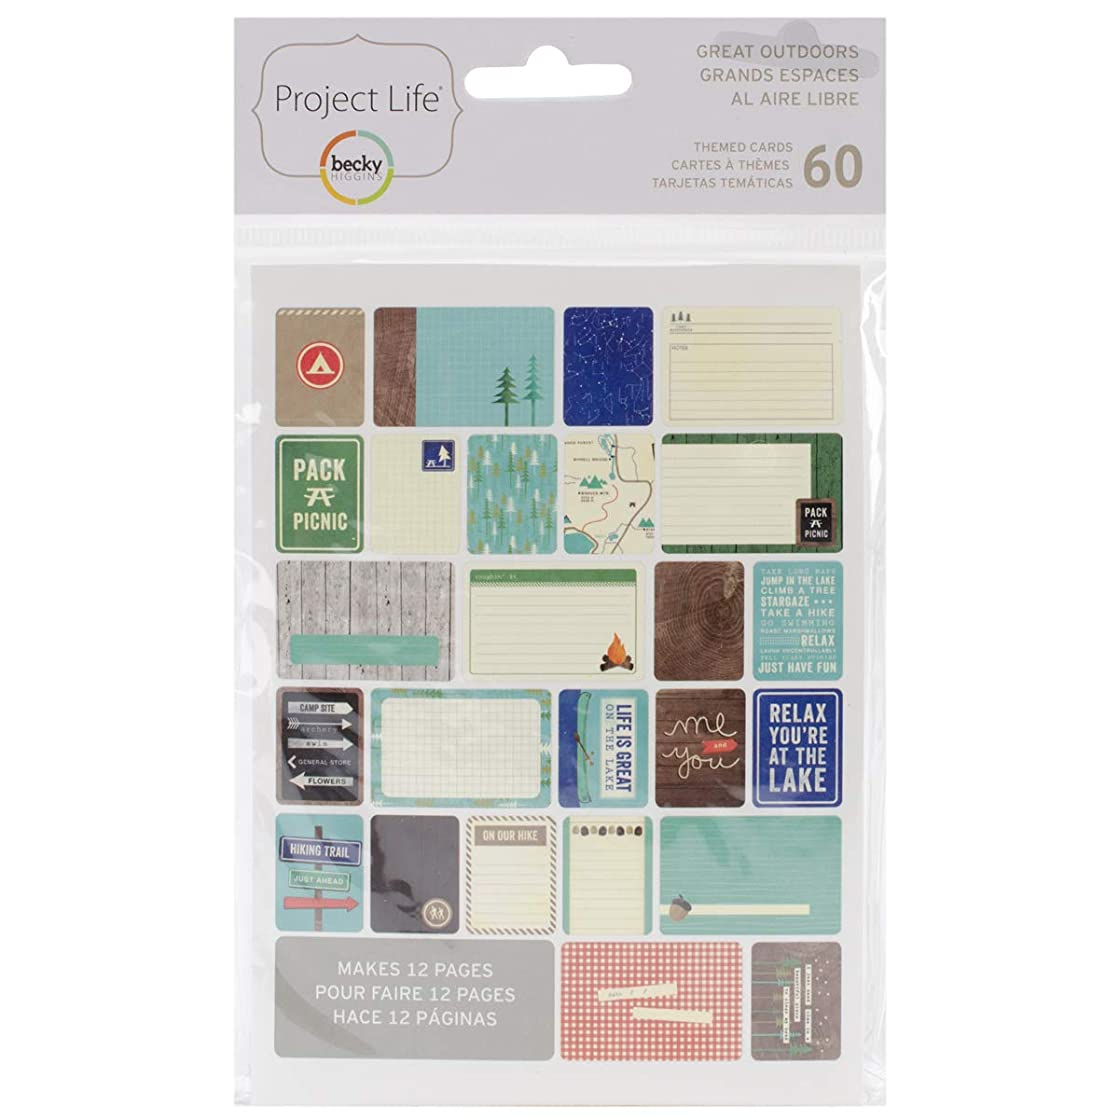 American Crafts 380228 Project Life Themed Cards 60/Pkg- Outdoors